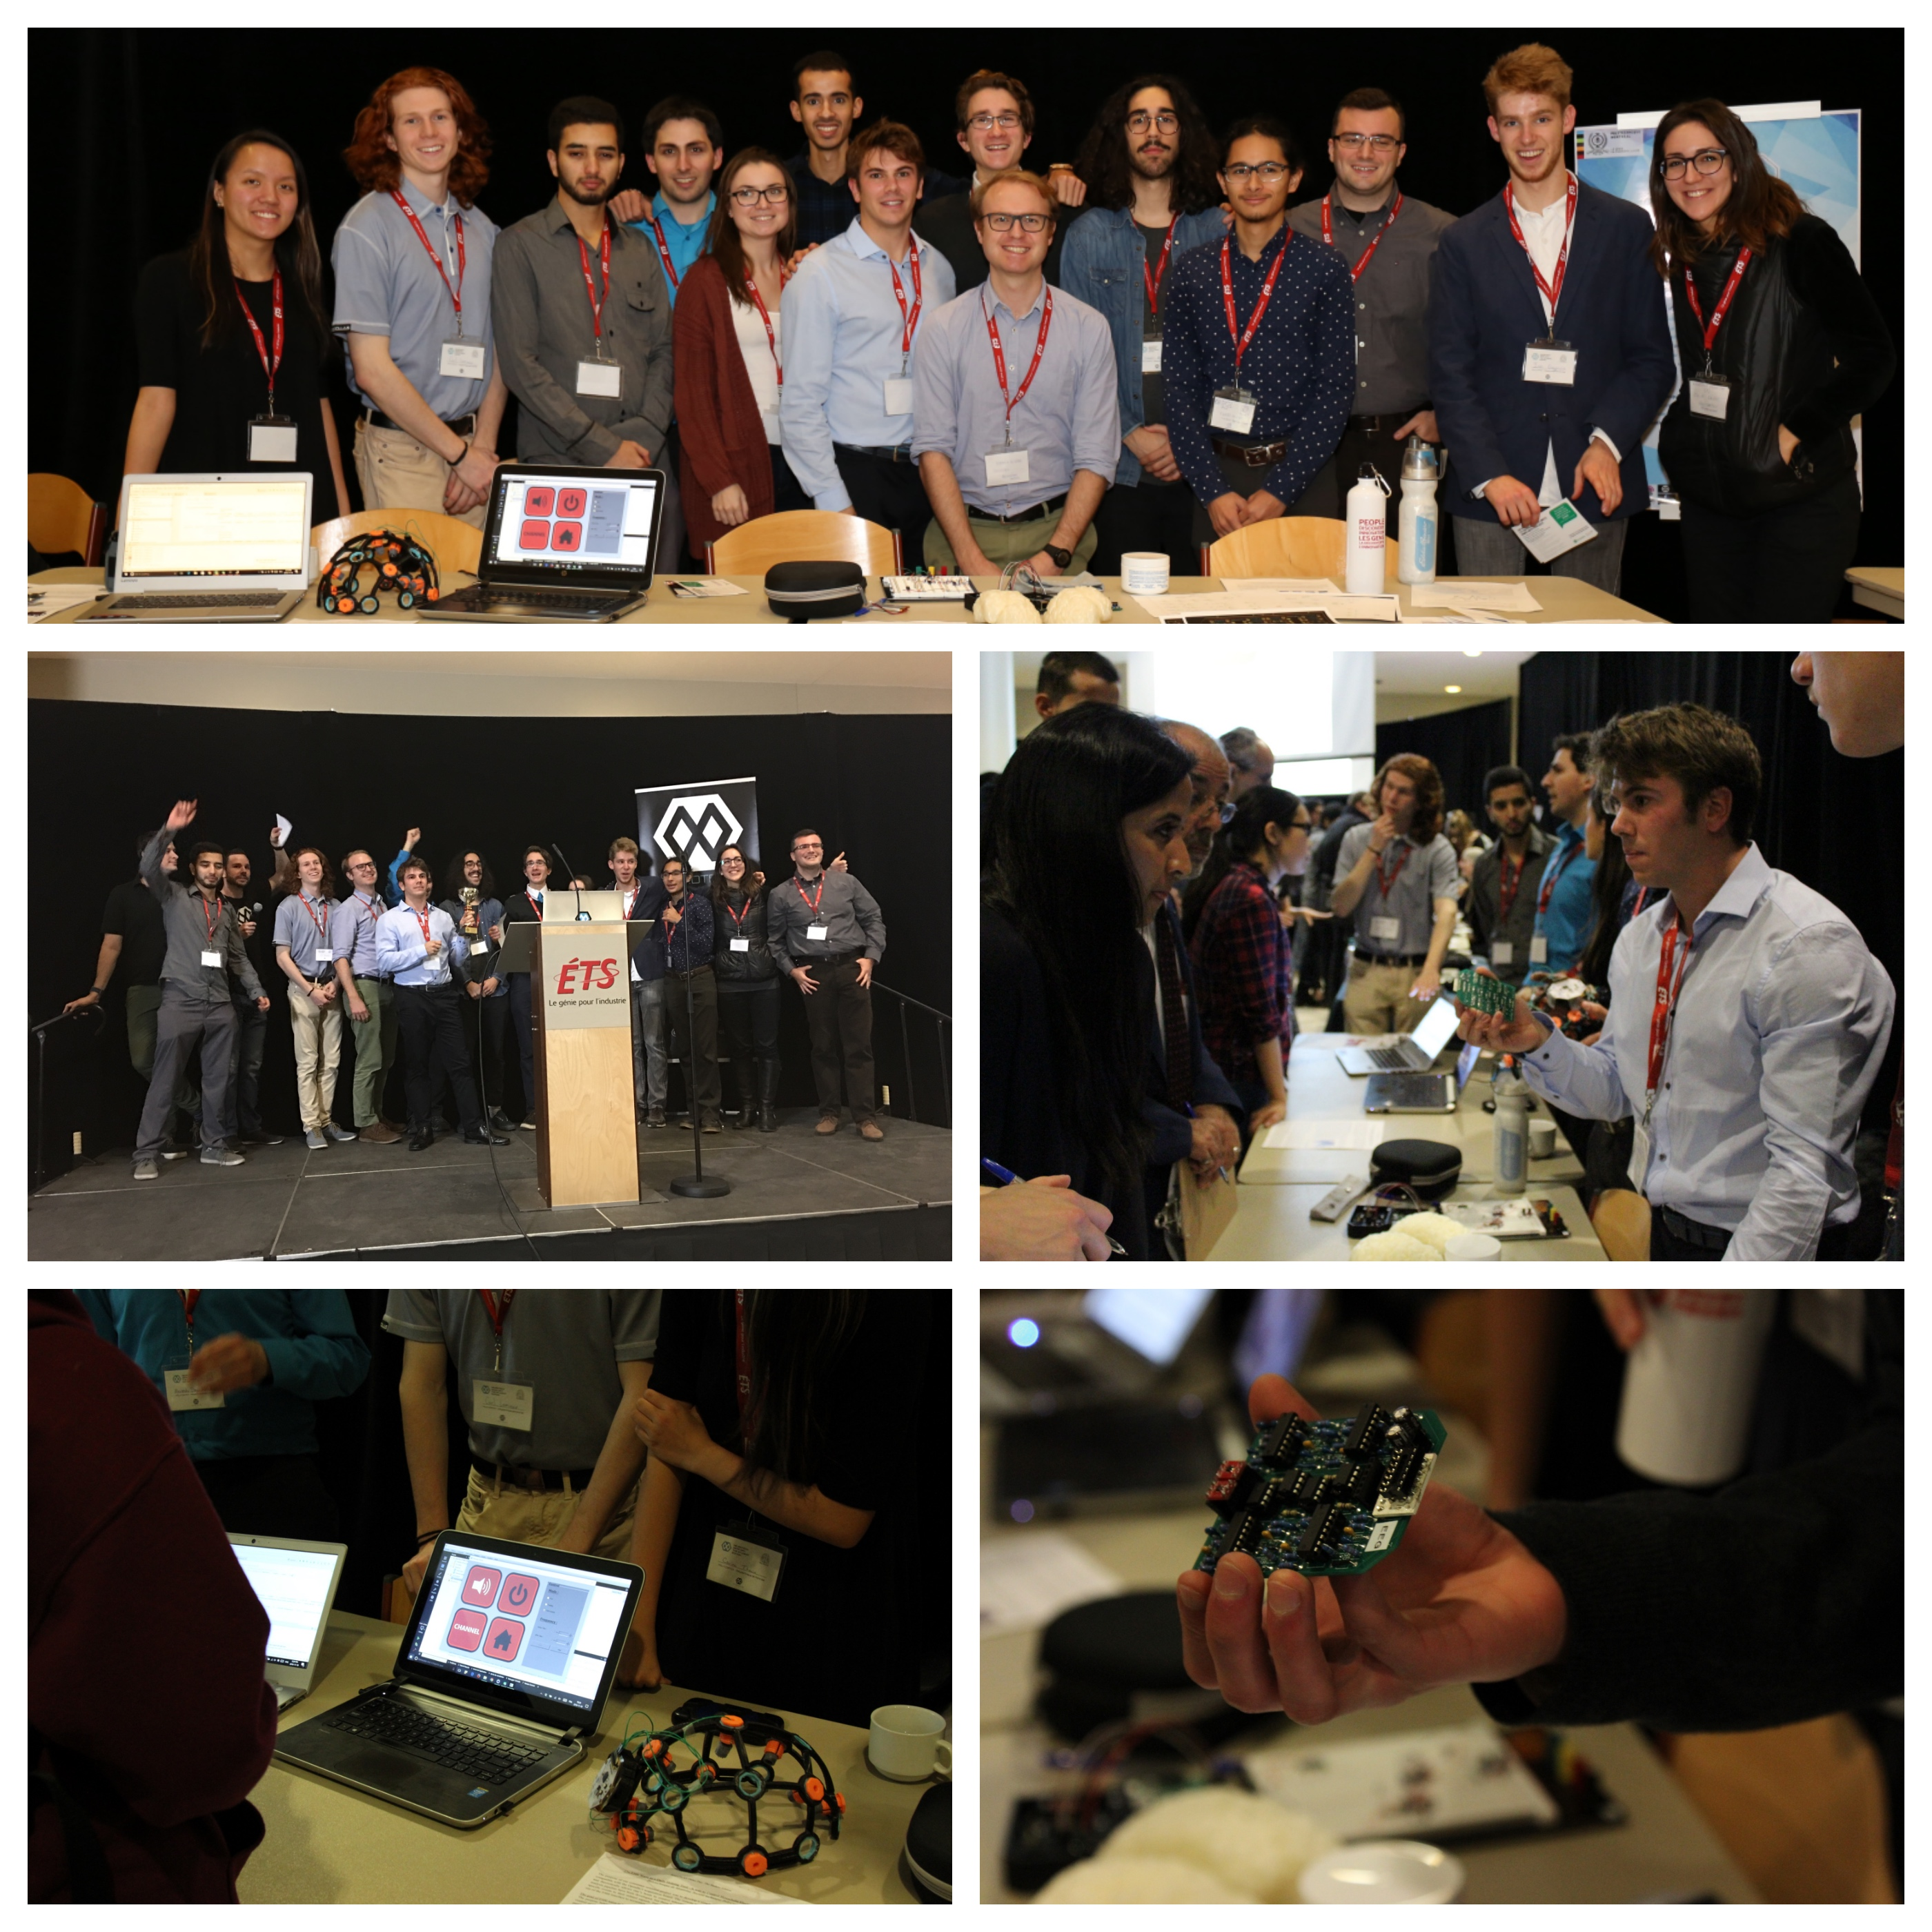 Student Clubs - Demo Day 2016: PolyCortex